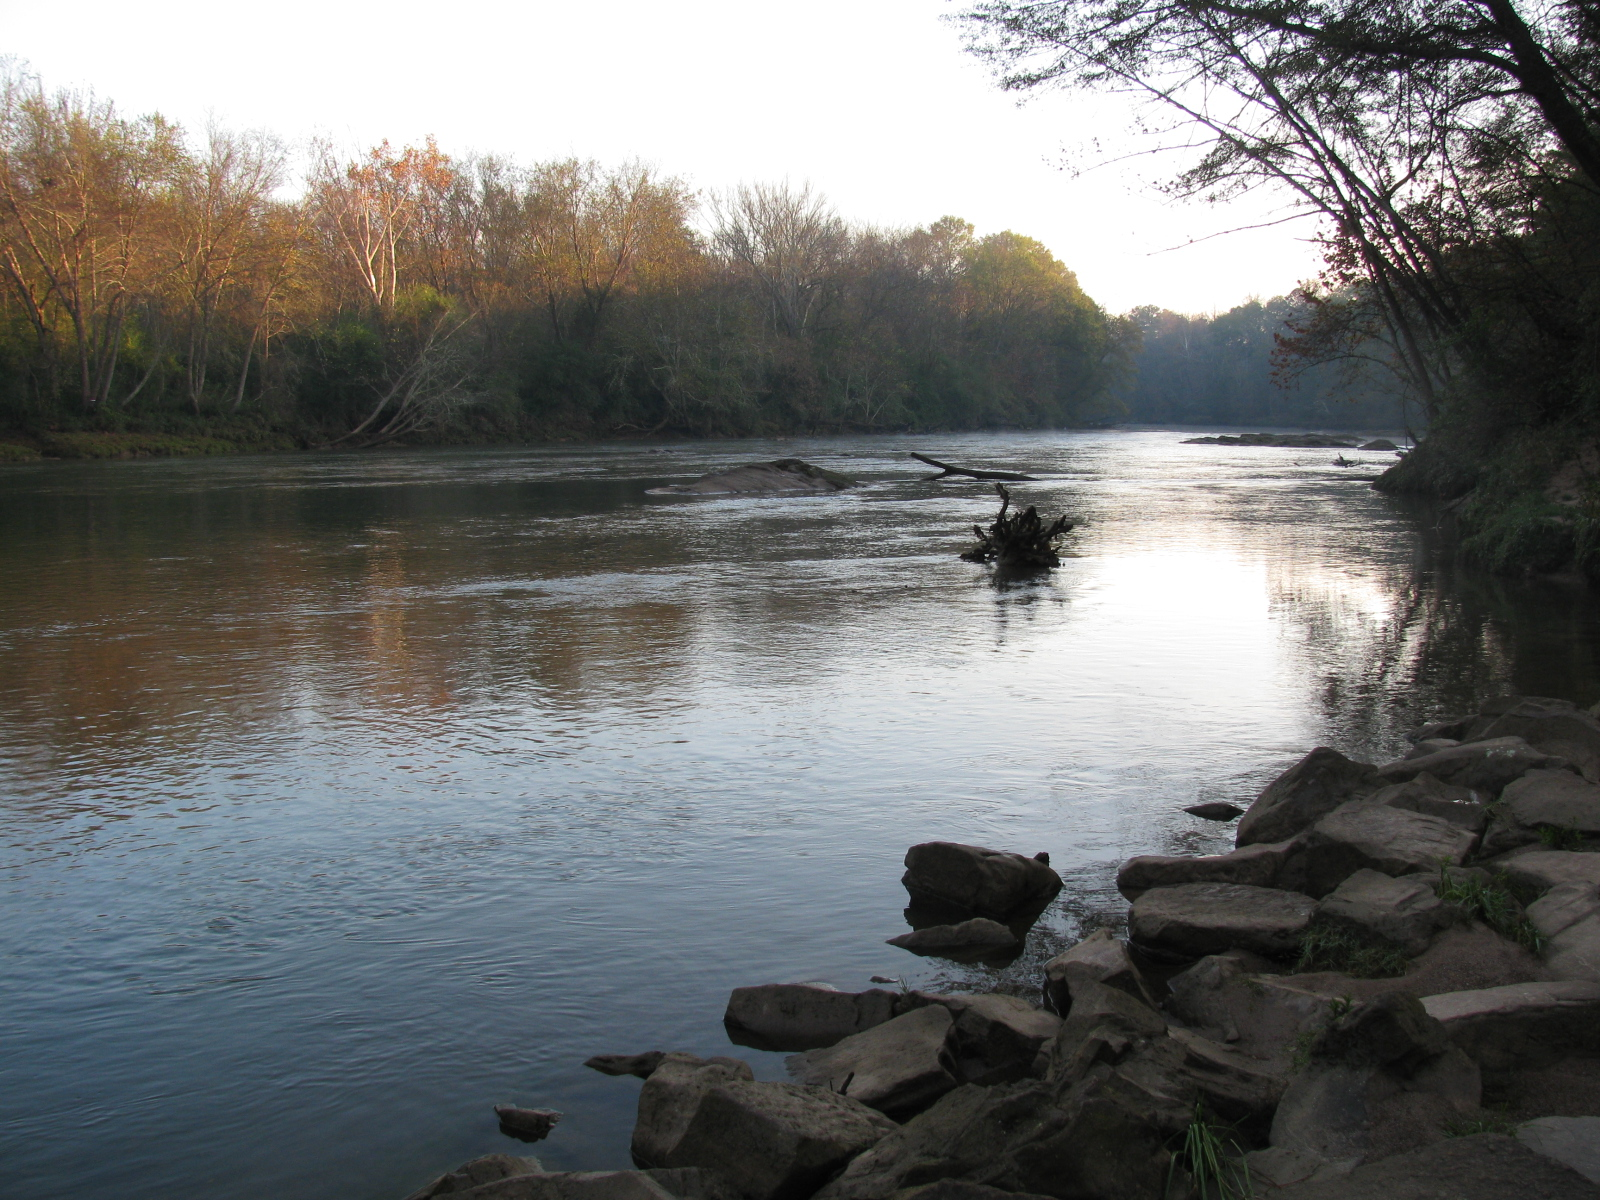 Chattahoochee river fishing report april 2011 for Chattahoochee river fishing